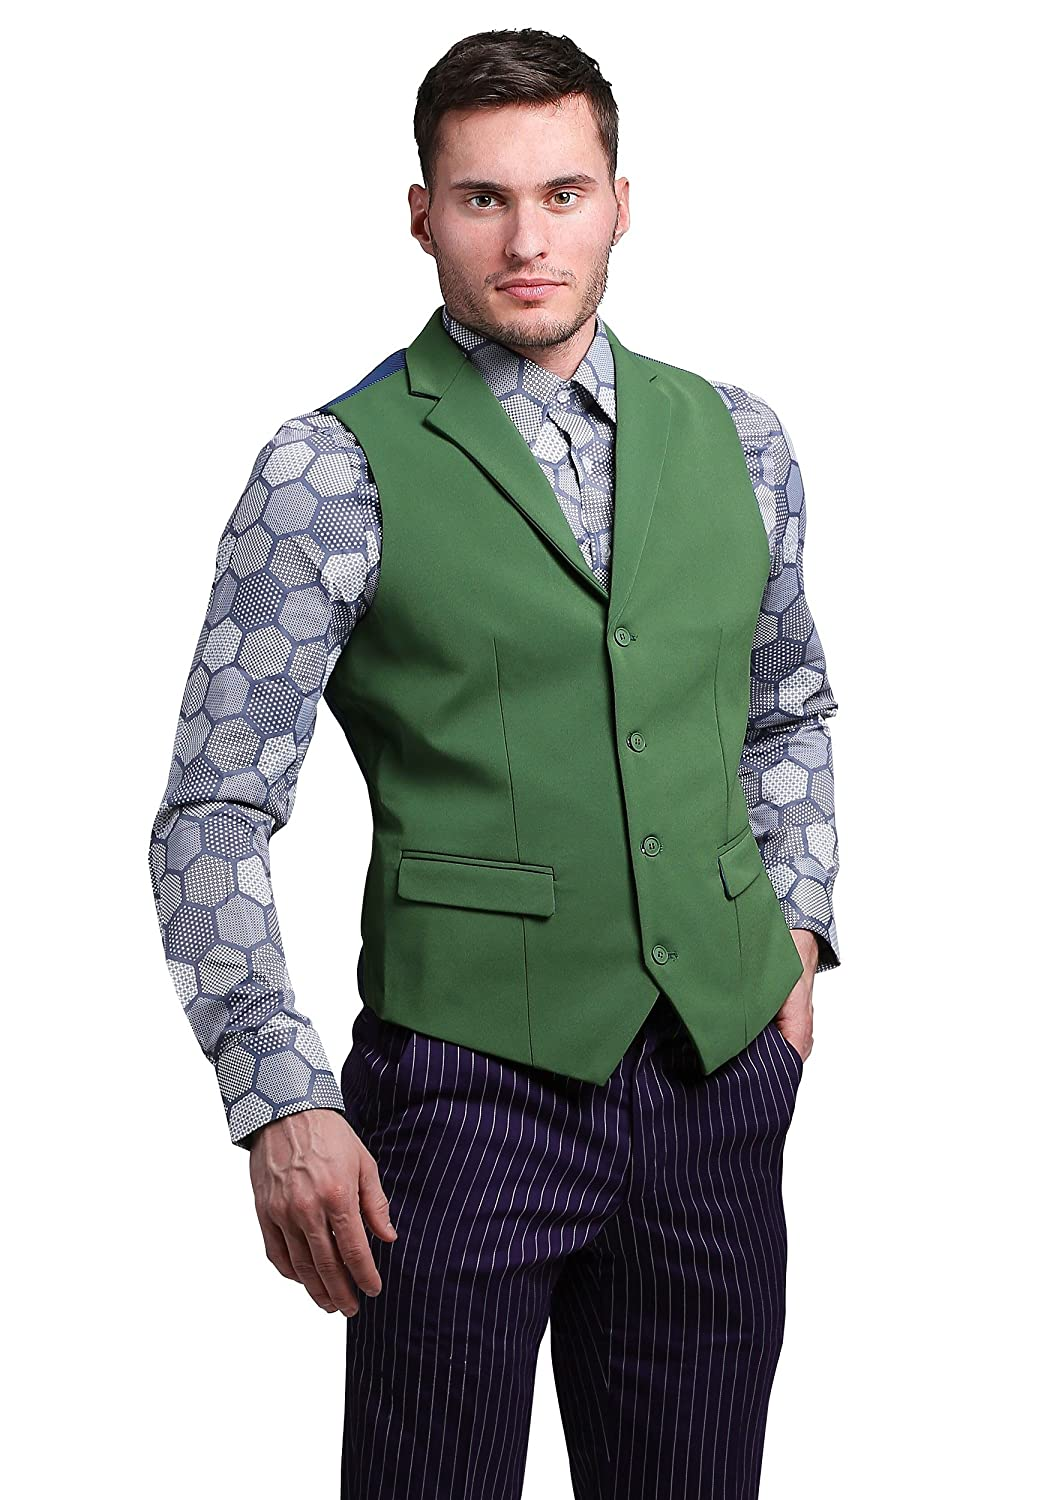 FUN Suits The Joker Suit Vest (Authentic) X-Small